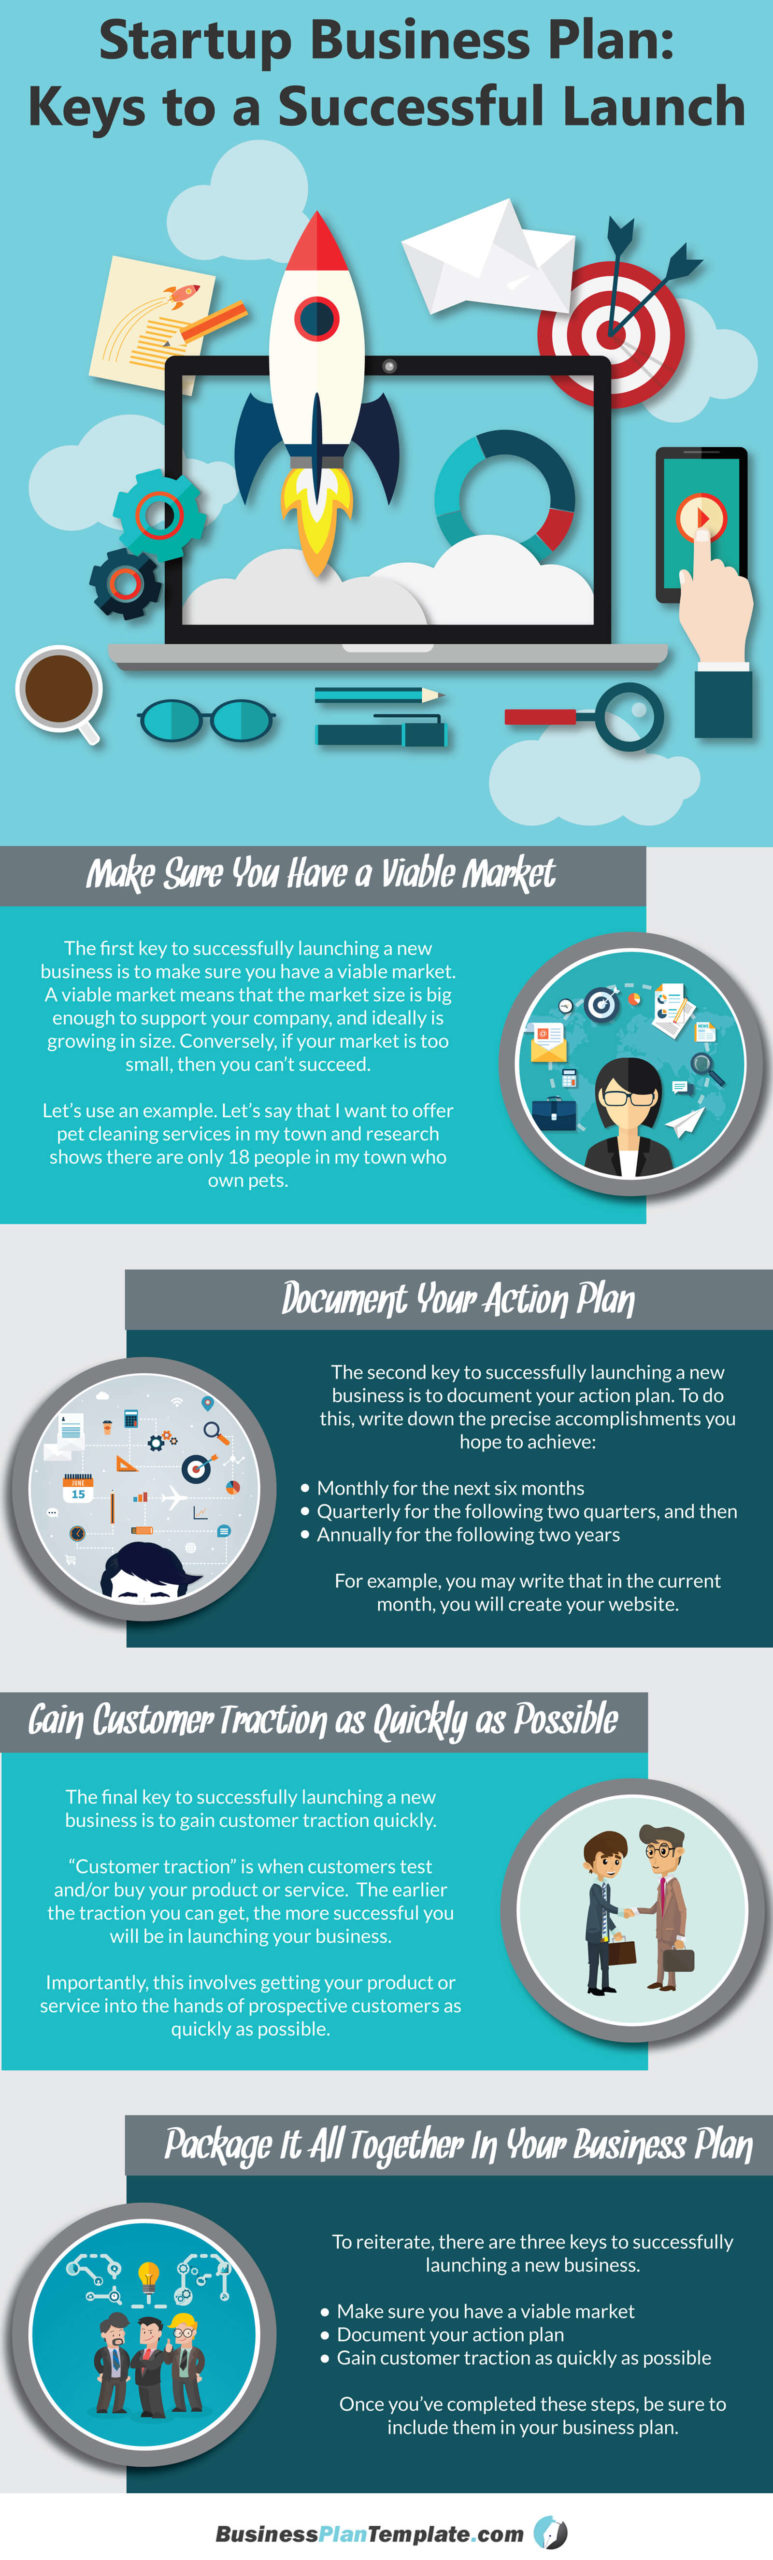 Startup Business Plan Infographic